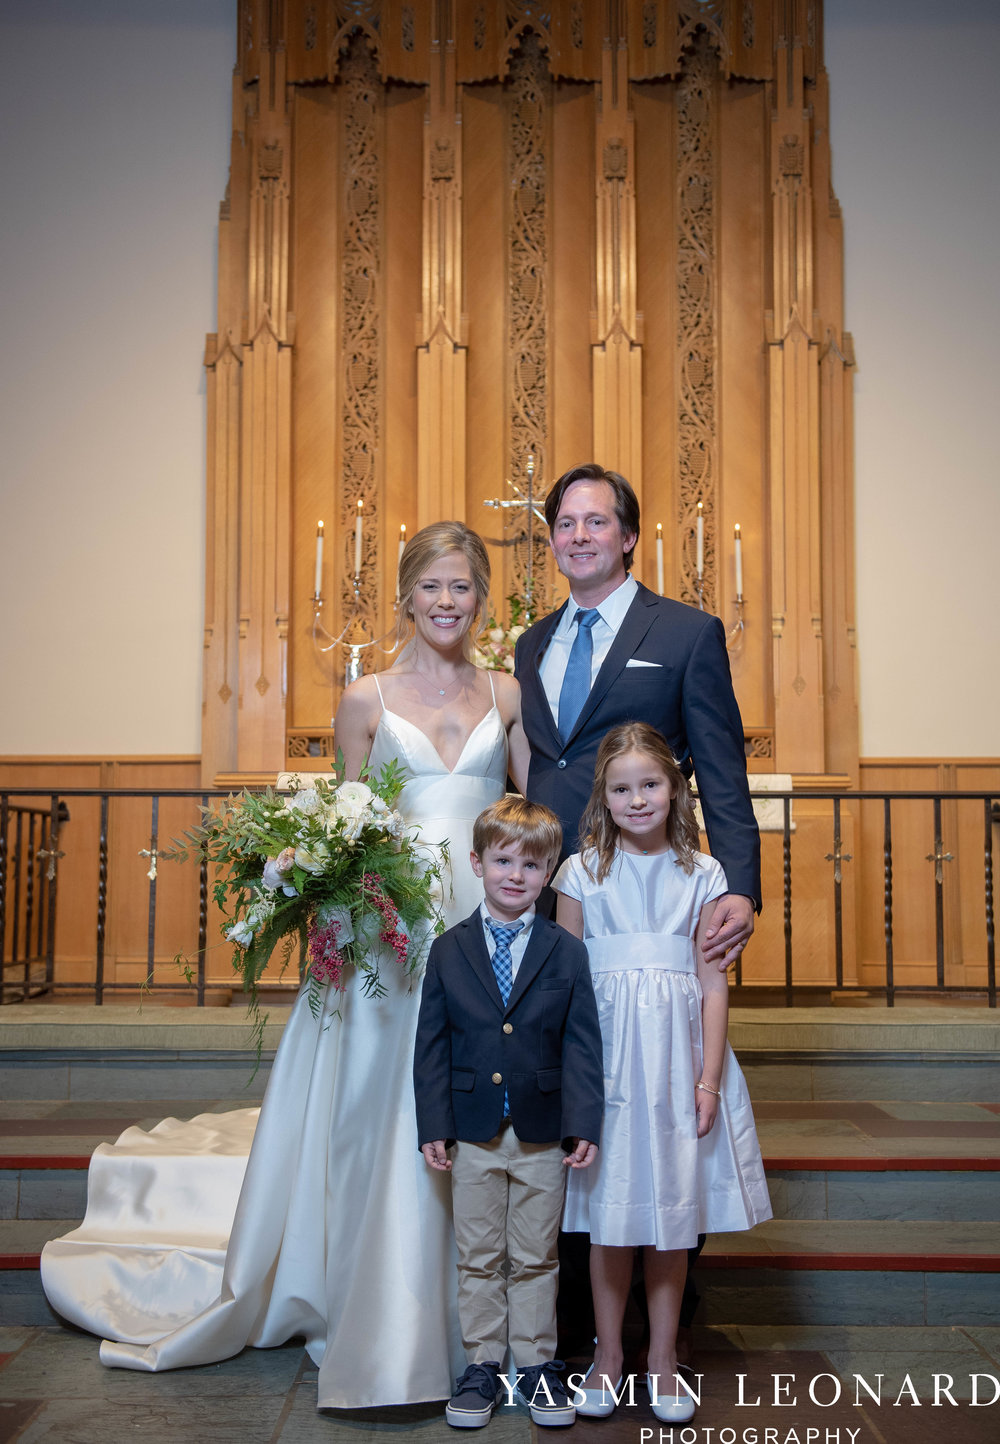 Wesley Memorial United Methodist Church - EmeryWood - High Point Weddings - High Point Wedding Photographer - NC Wedding Photographer - Yasmin Leonard Photography-30.jpg